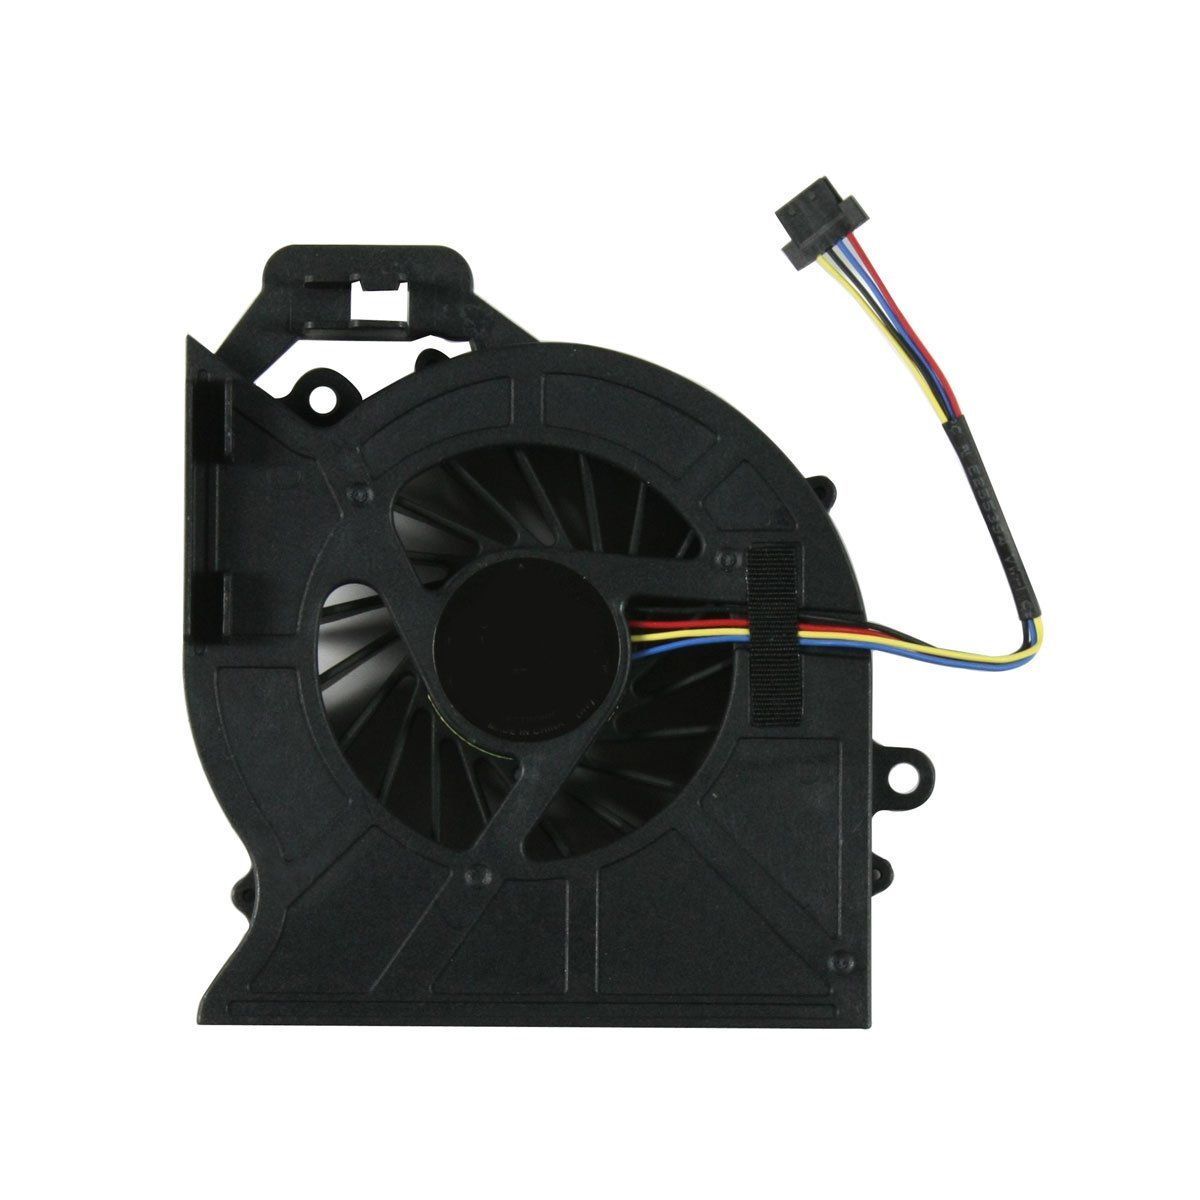 Amazon.com: Replacement CPU Cooling Fan For HP Pavilion DV6-6000 DV6t-6000  CTO DV6-6100 DV6t-6100 CTO DV6z-6100 CTO DV6-6200 DV6-6b00 DV6t-6b00 CTO ...